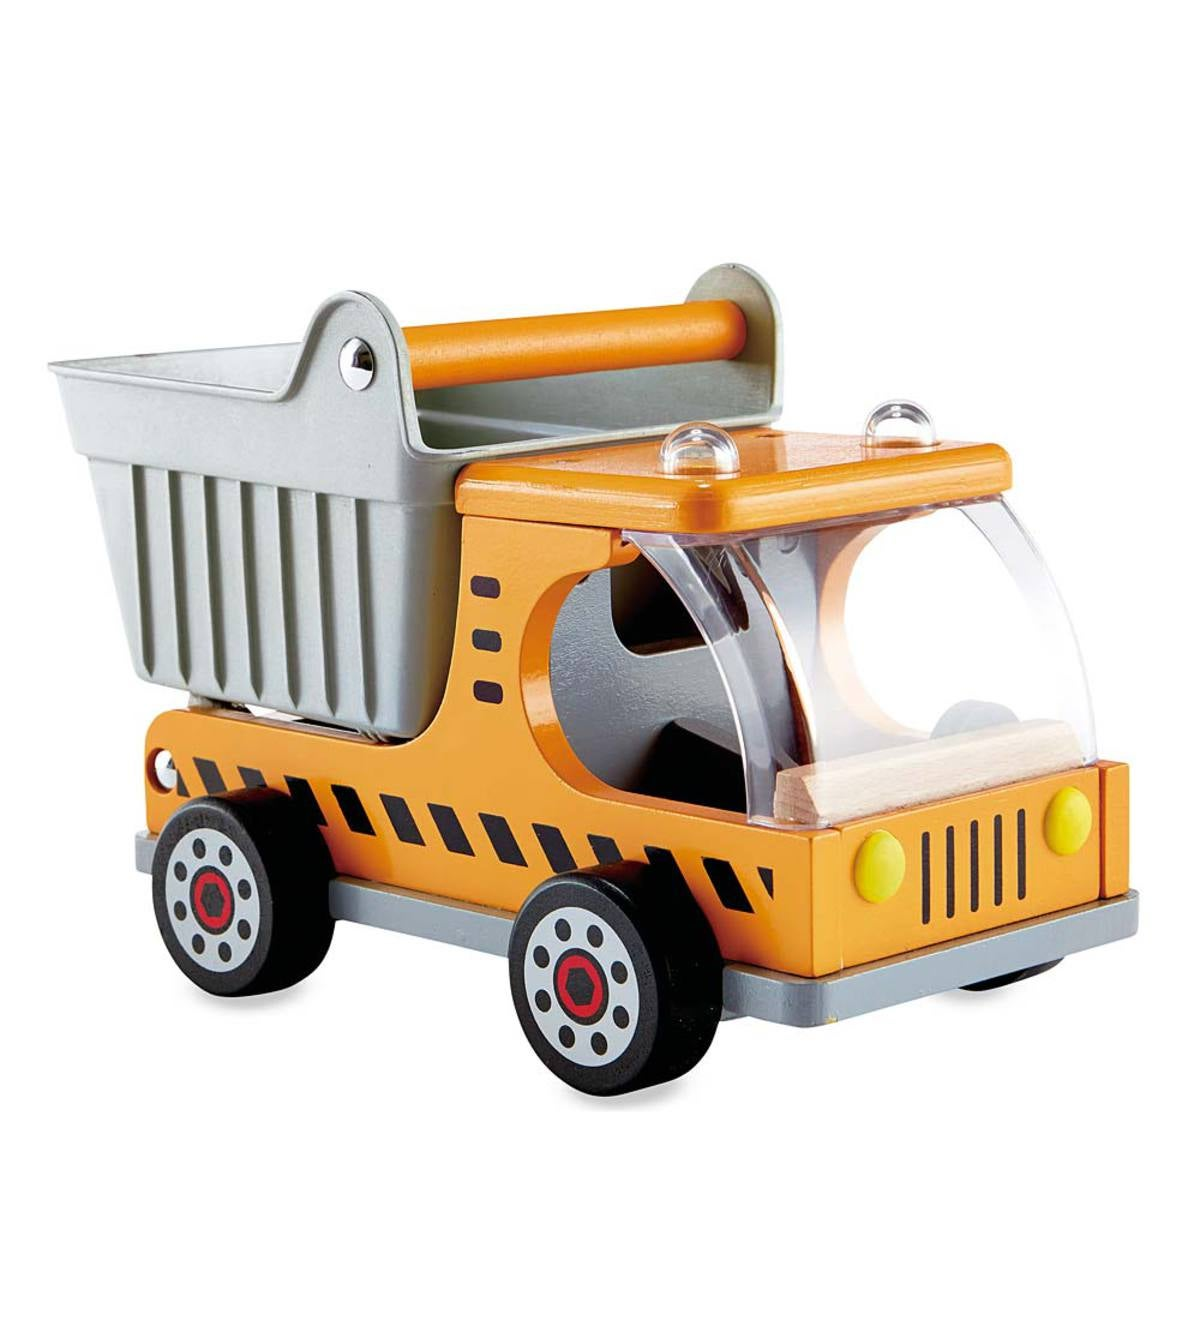 Mighty Wooden Construction Vehicles - Dump Truck